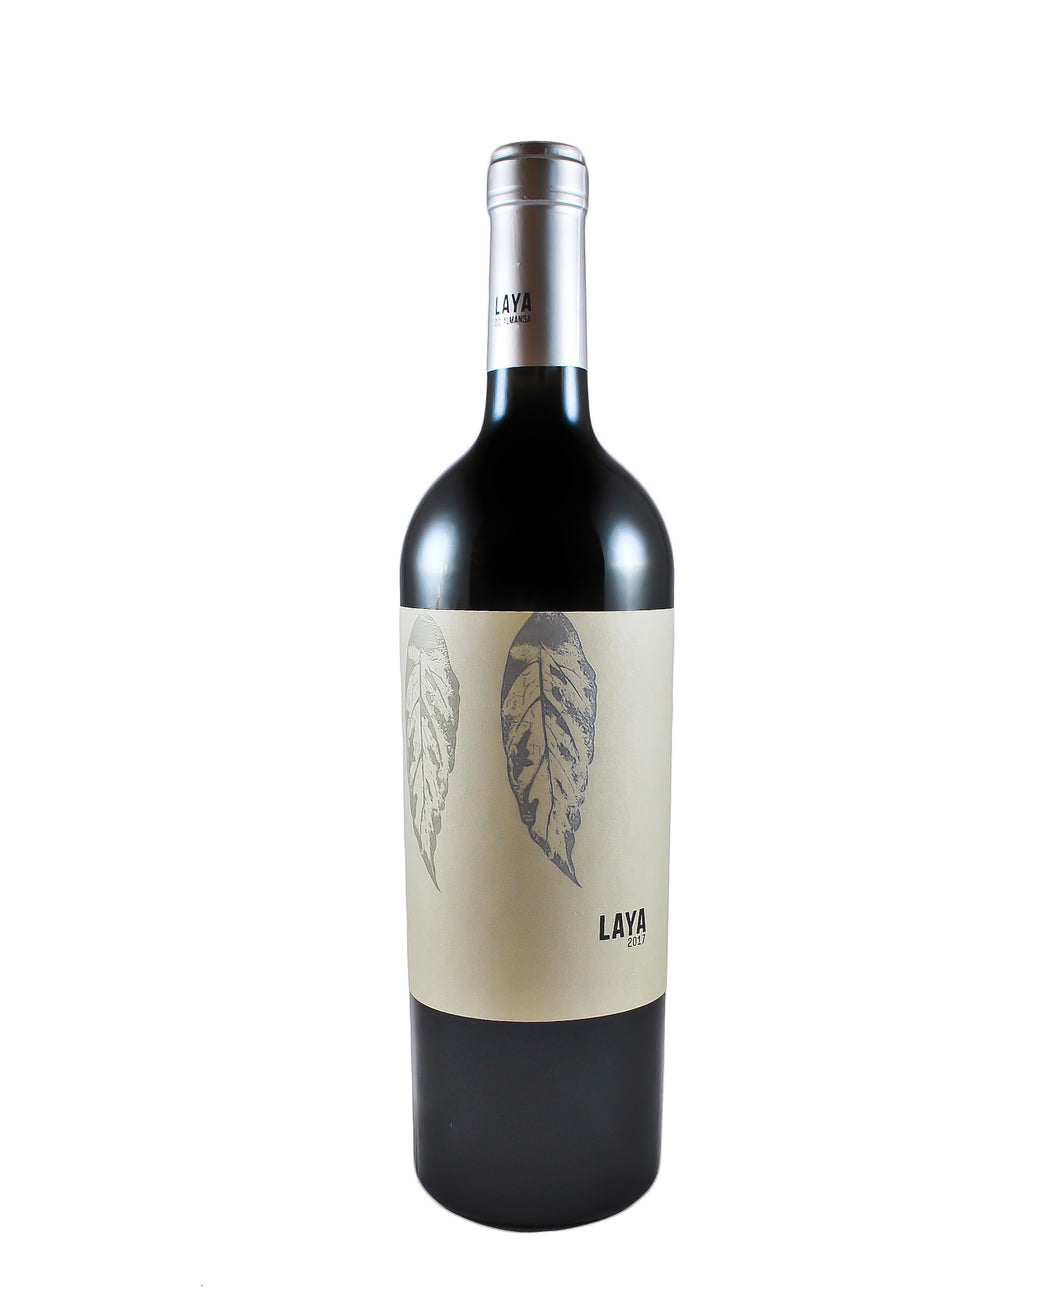 *9R* 2018 Laya Almansa Red (Almansa, Spain)